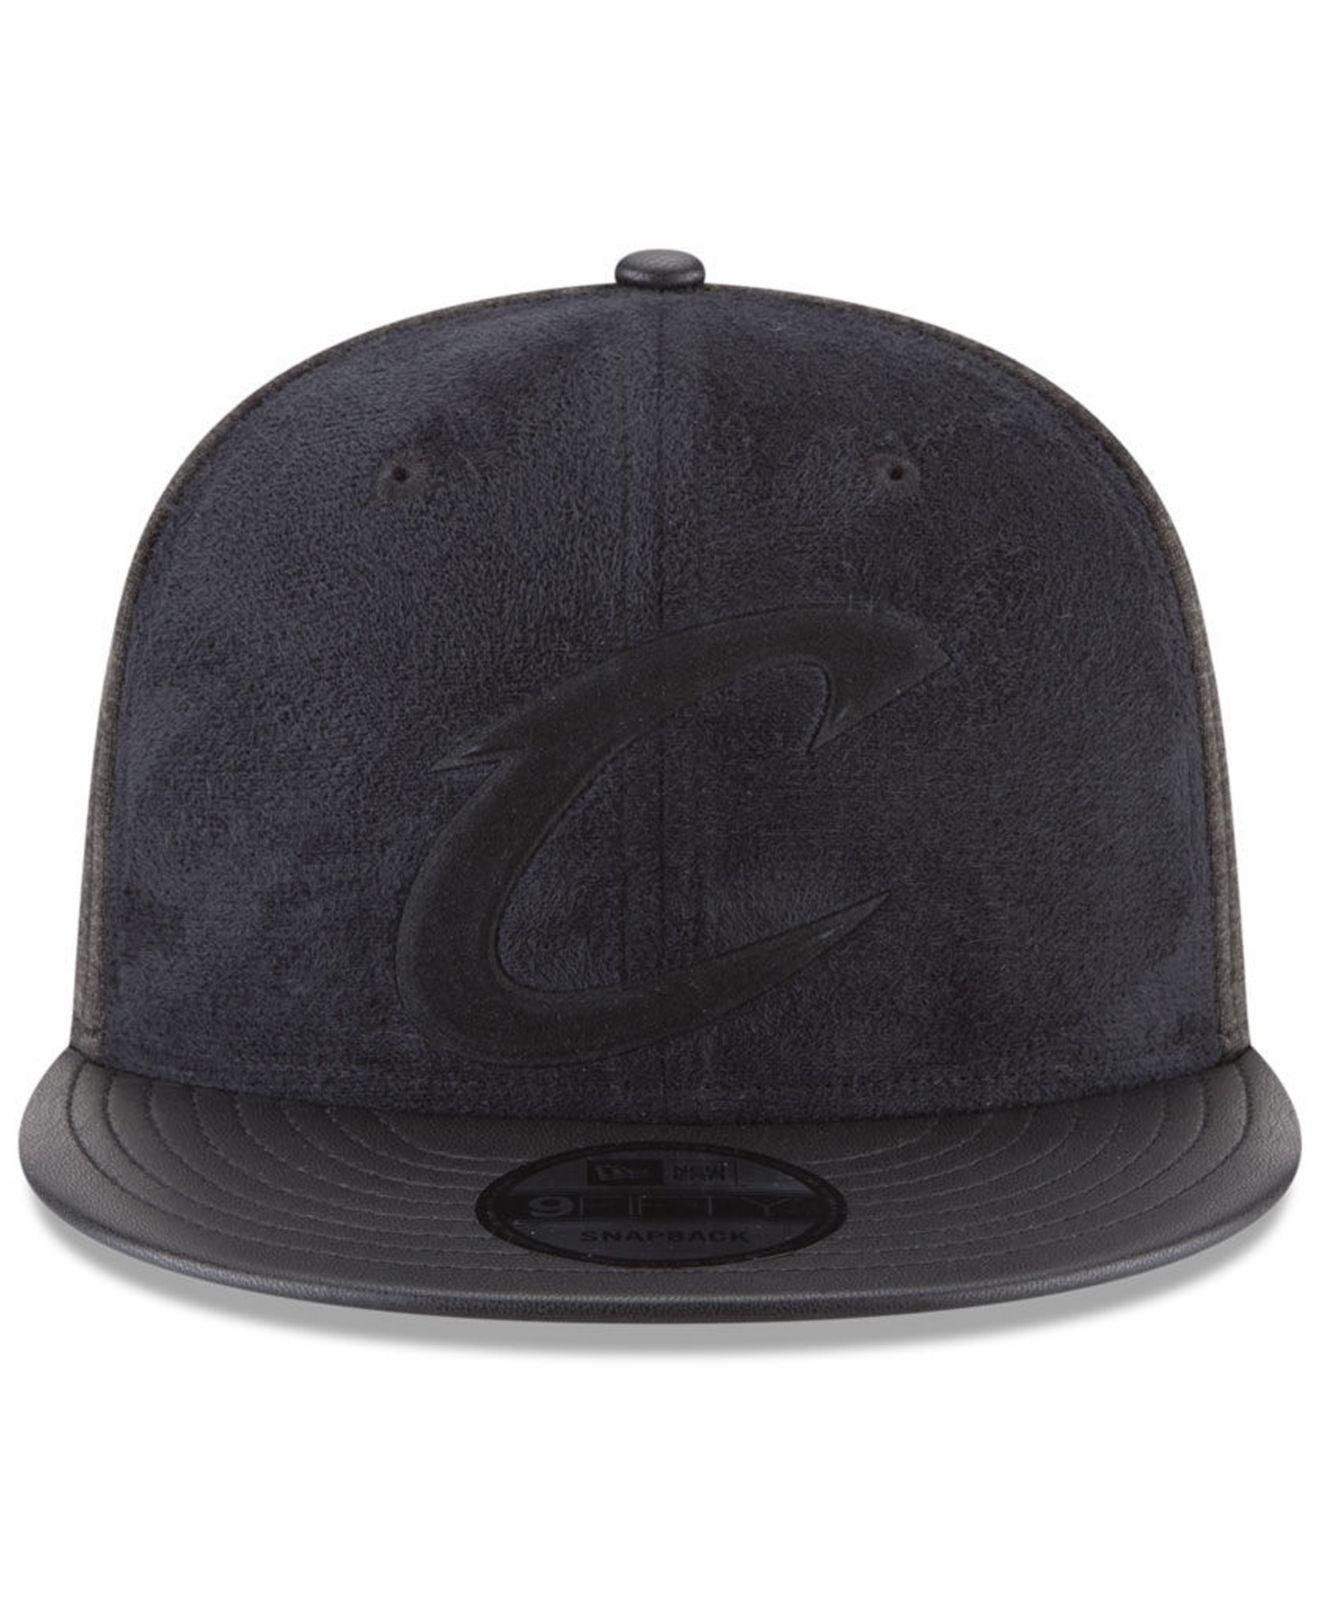 new concept 28951 5e51b Lyst - KTZ Nba All Star Paul George Collection 9fifty Snapback Cap in Black  for Men - Save 52%